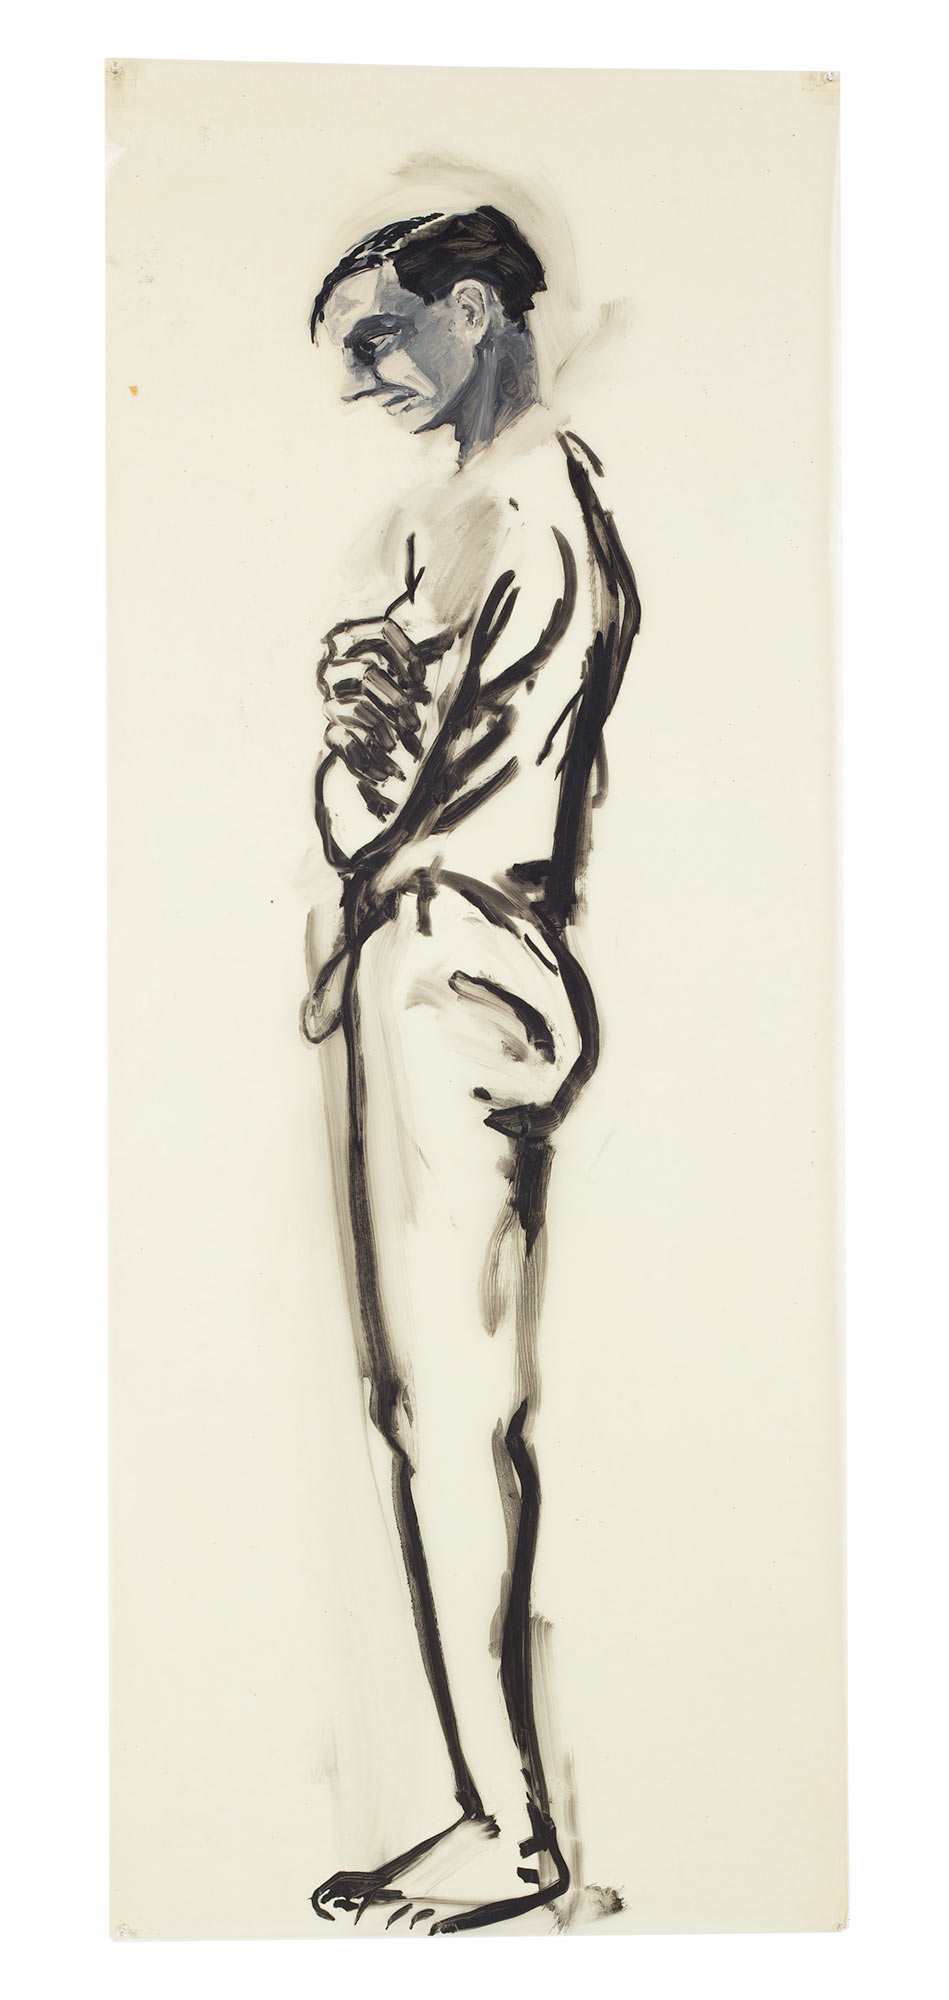 (standing man), 1978. Oil on Glassine. 60 x 24 in. (152 x 61 cm.)